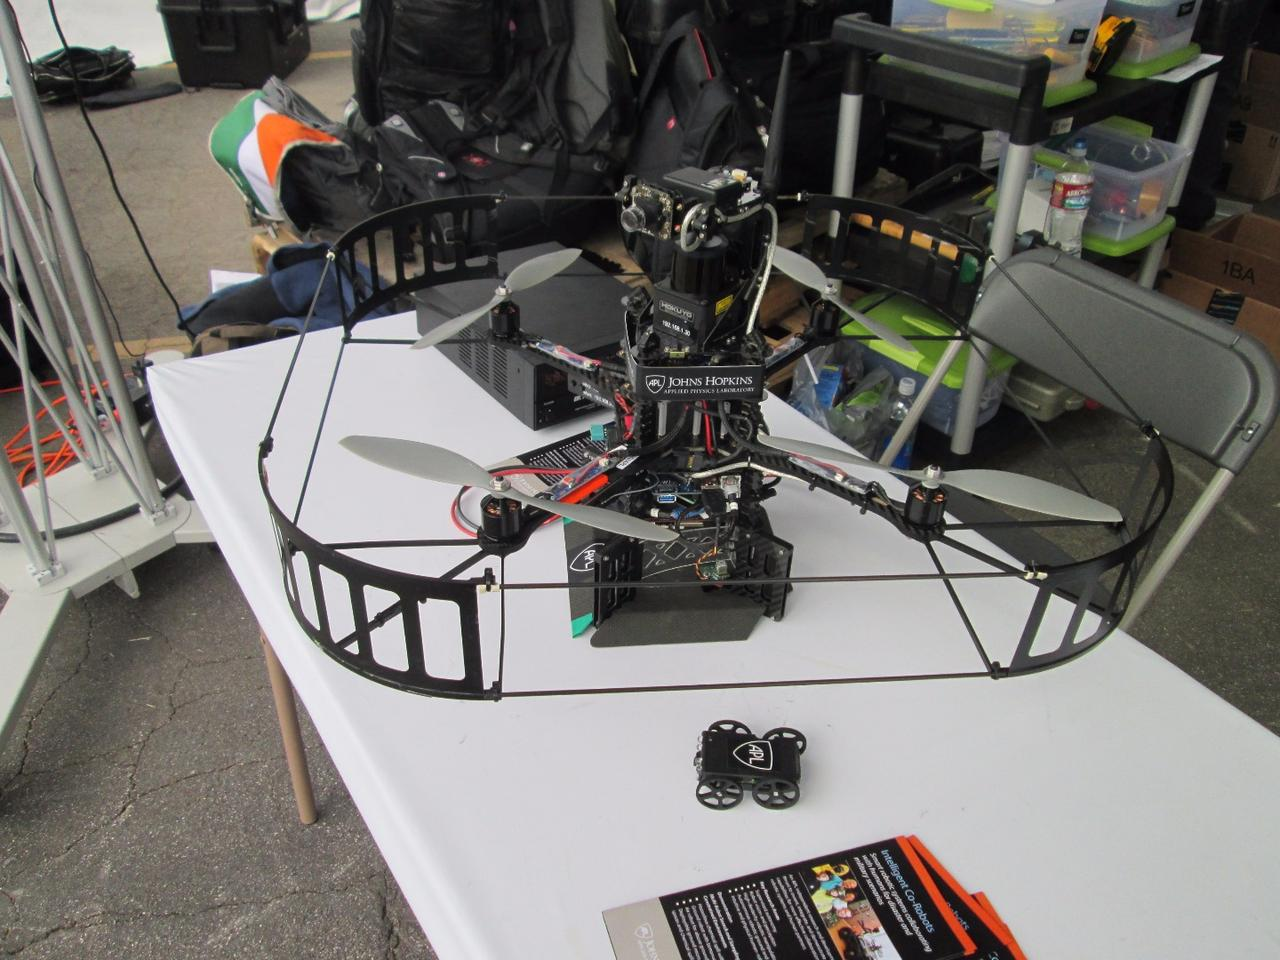 A drone displayed by Johns Hopkins University